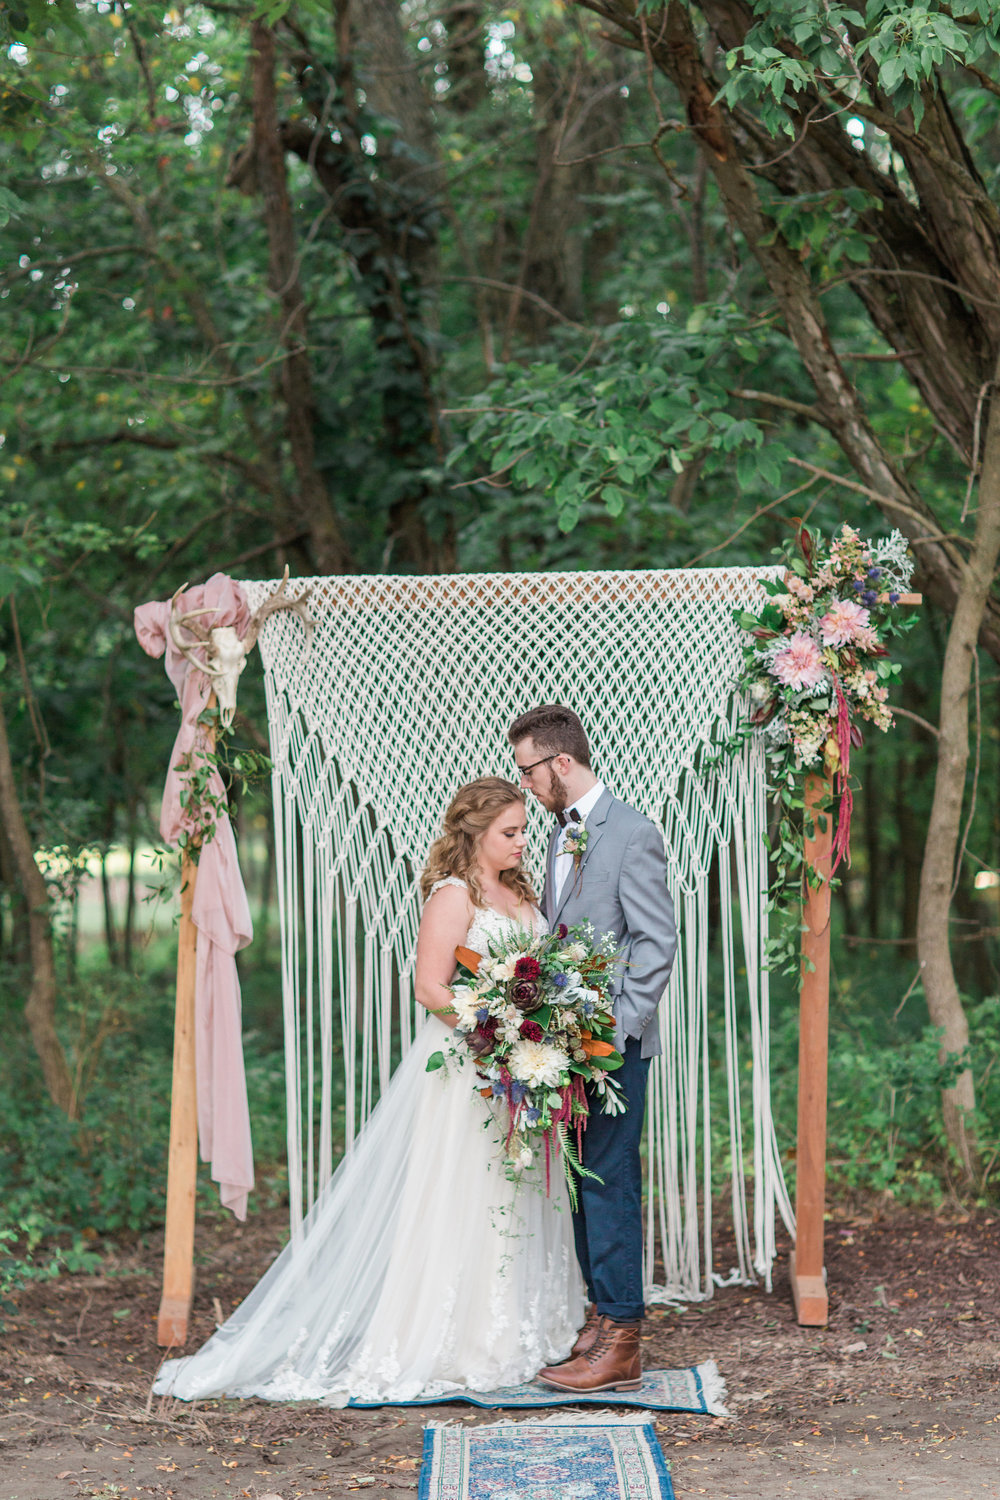 macrame-skull-country-lane-lodge-adel-iowa-wedding-venue-iowa-wedding-planned-by-mostly-becky-weddings-boho-wedding-orange-purple-flowers-blue-suite-brown-boots-outdoor-ceremony-